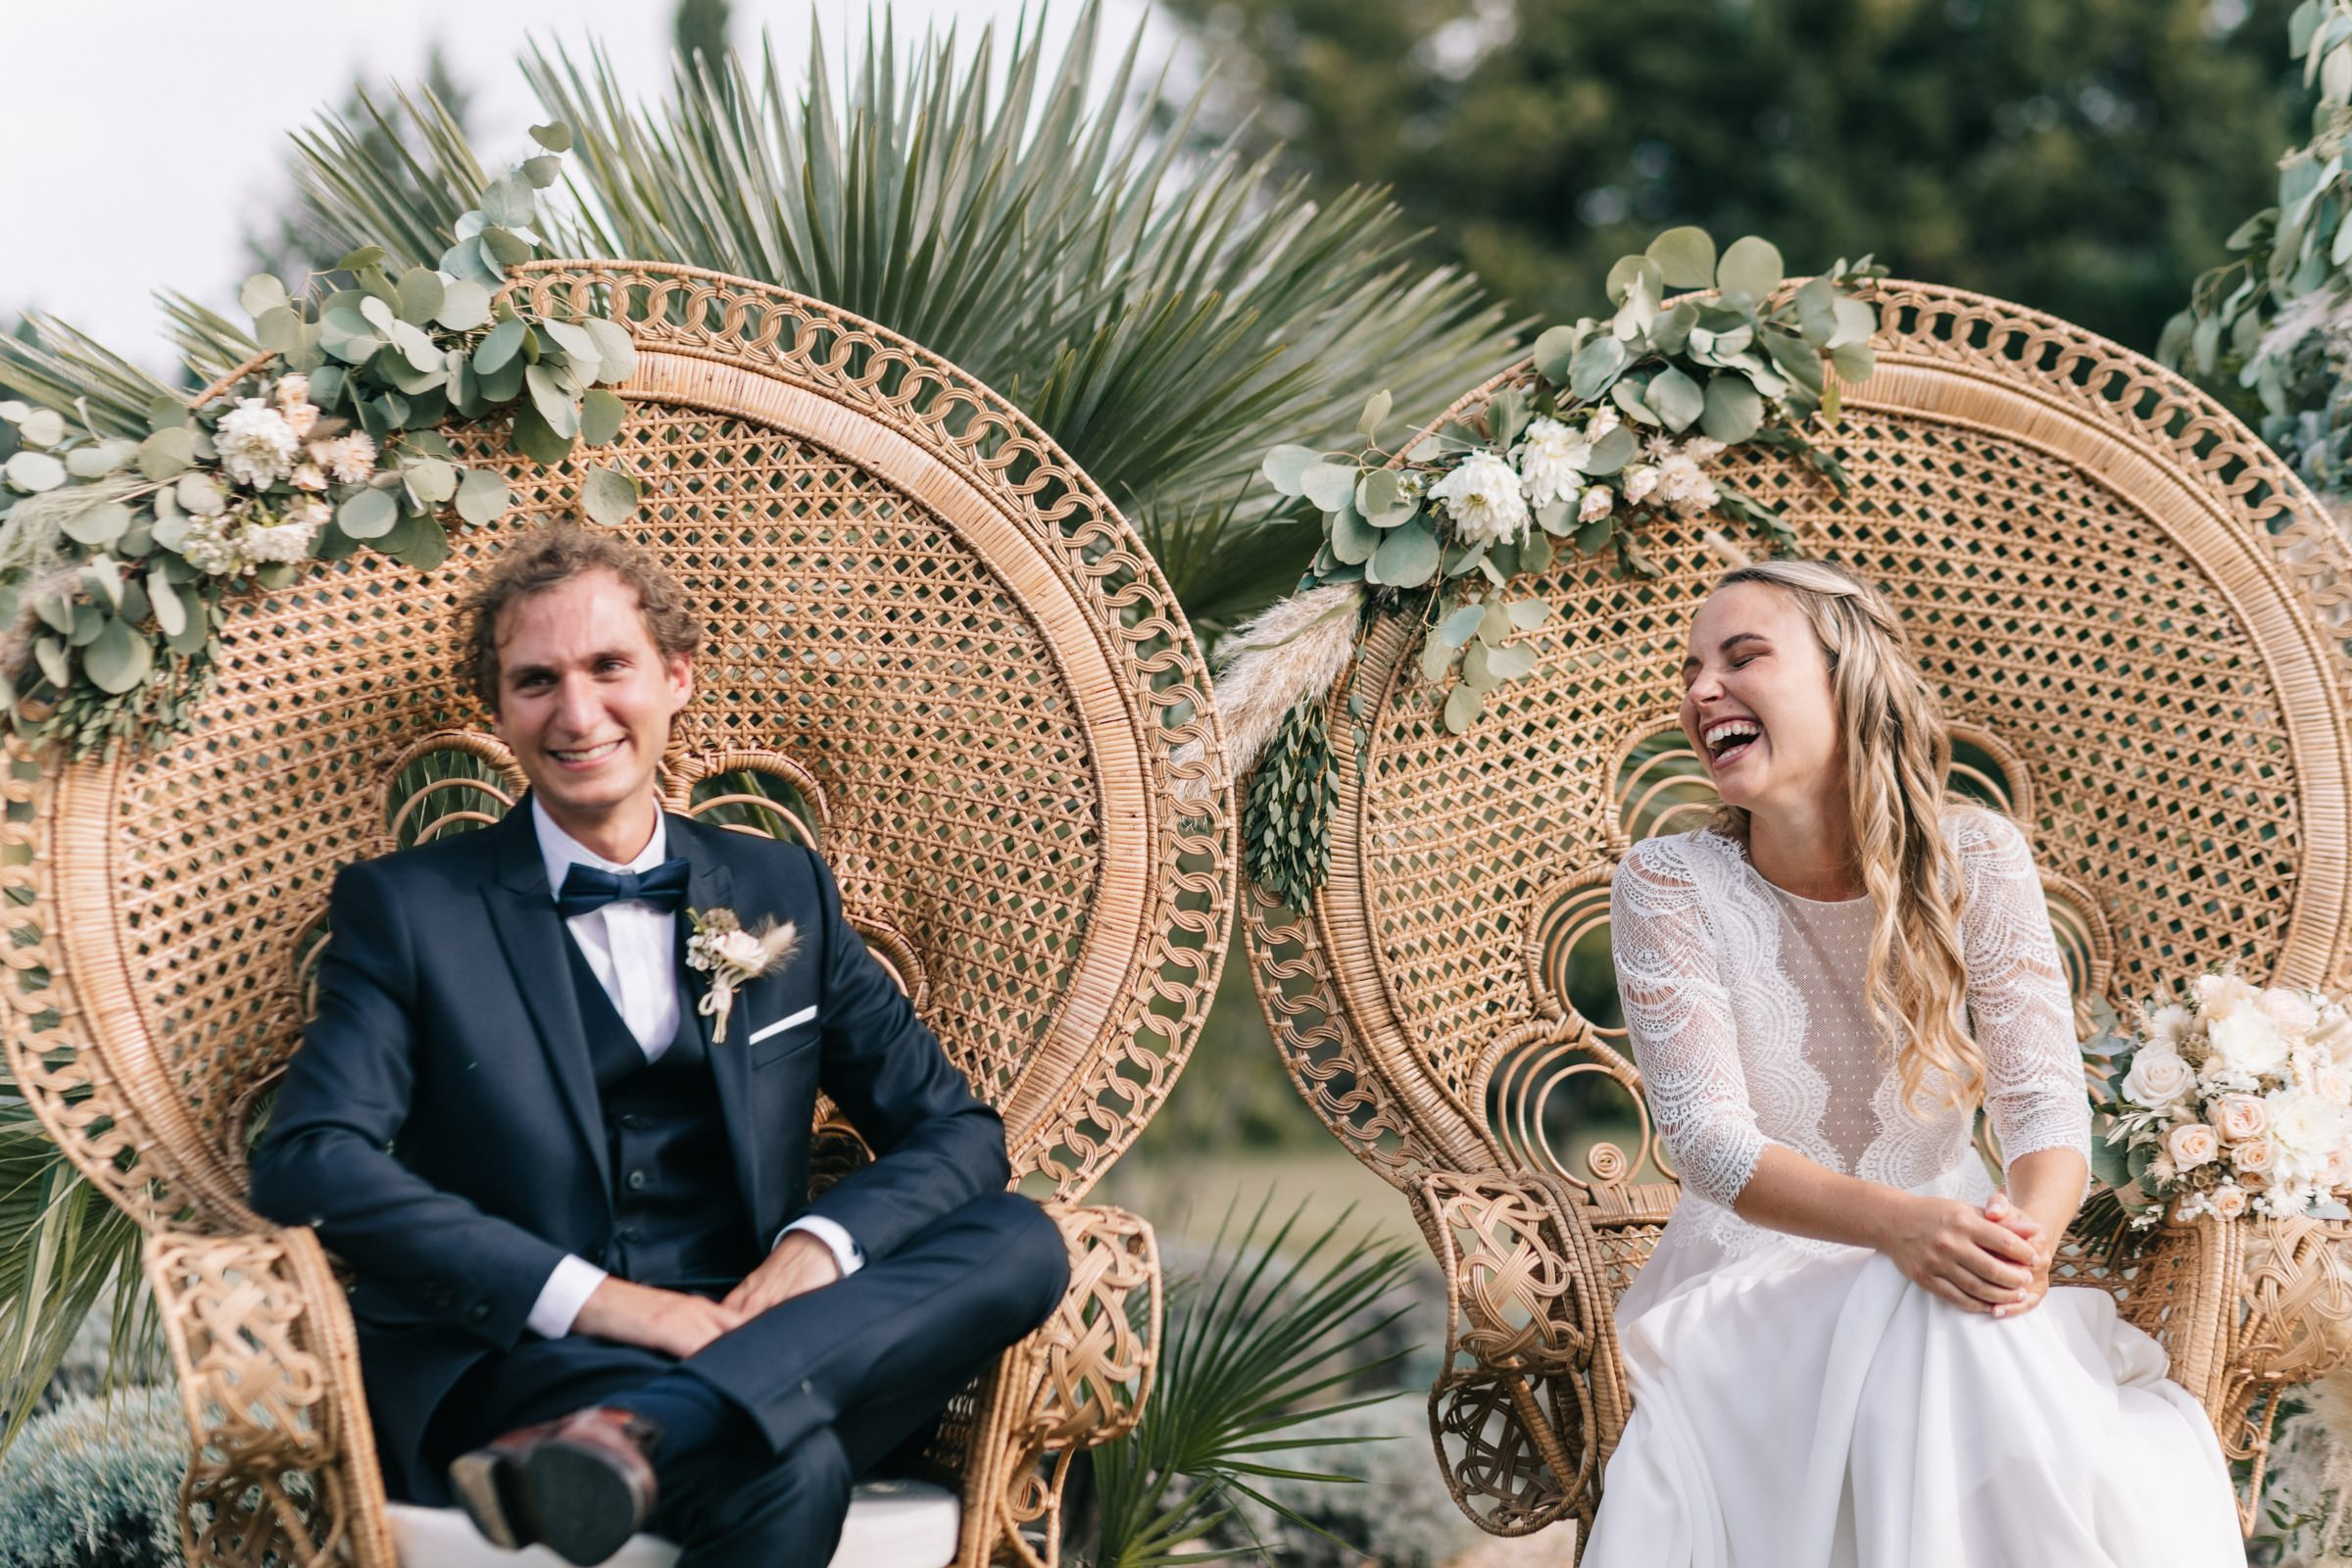 bride and groom laughing during toasts- photo by Amandine Ropars, france